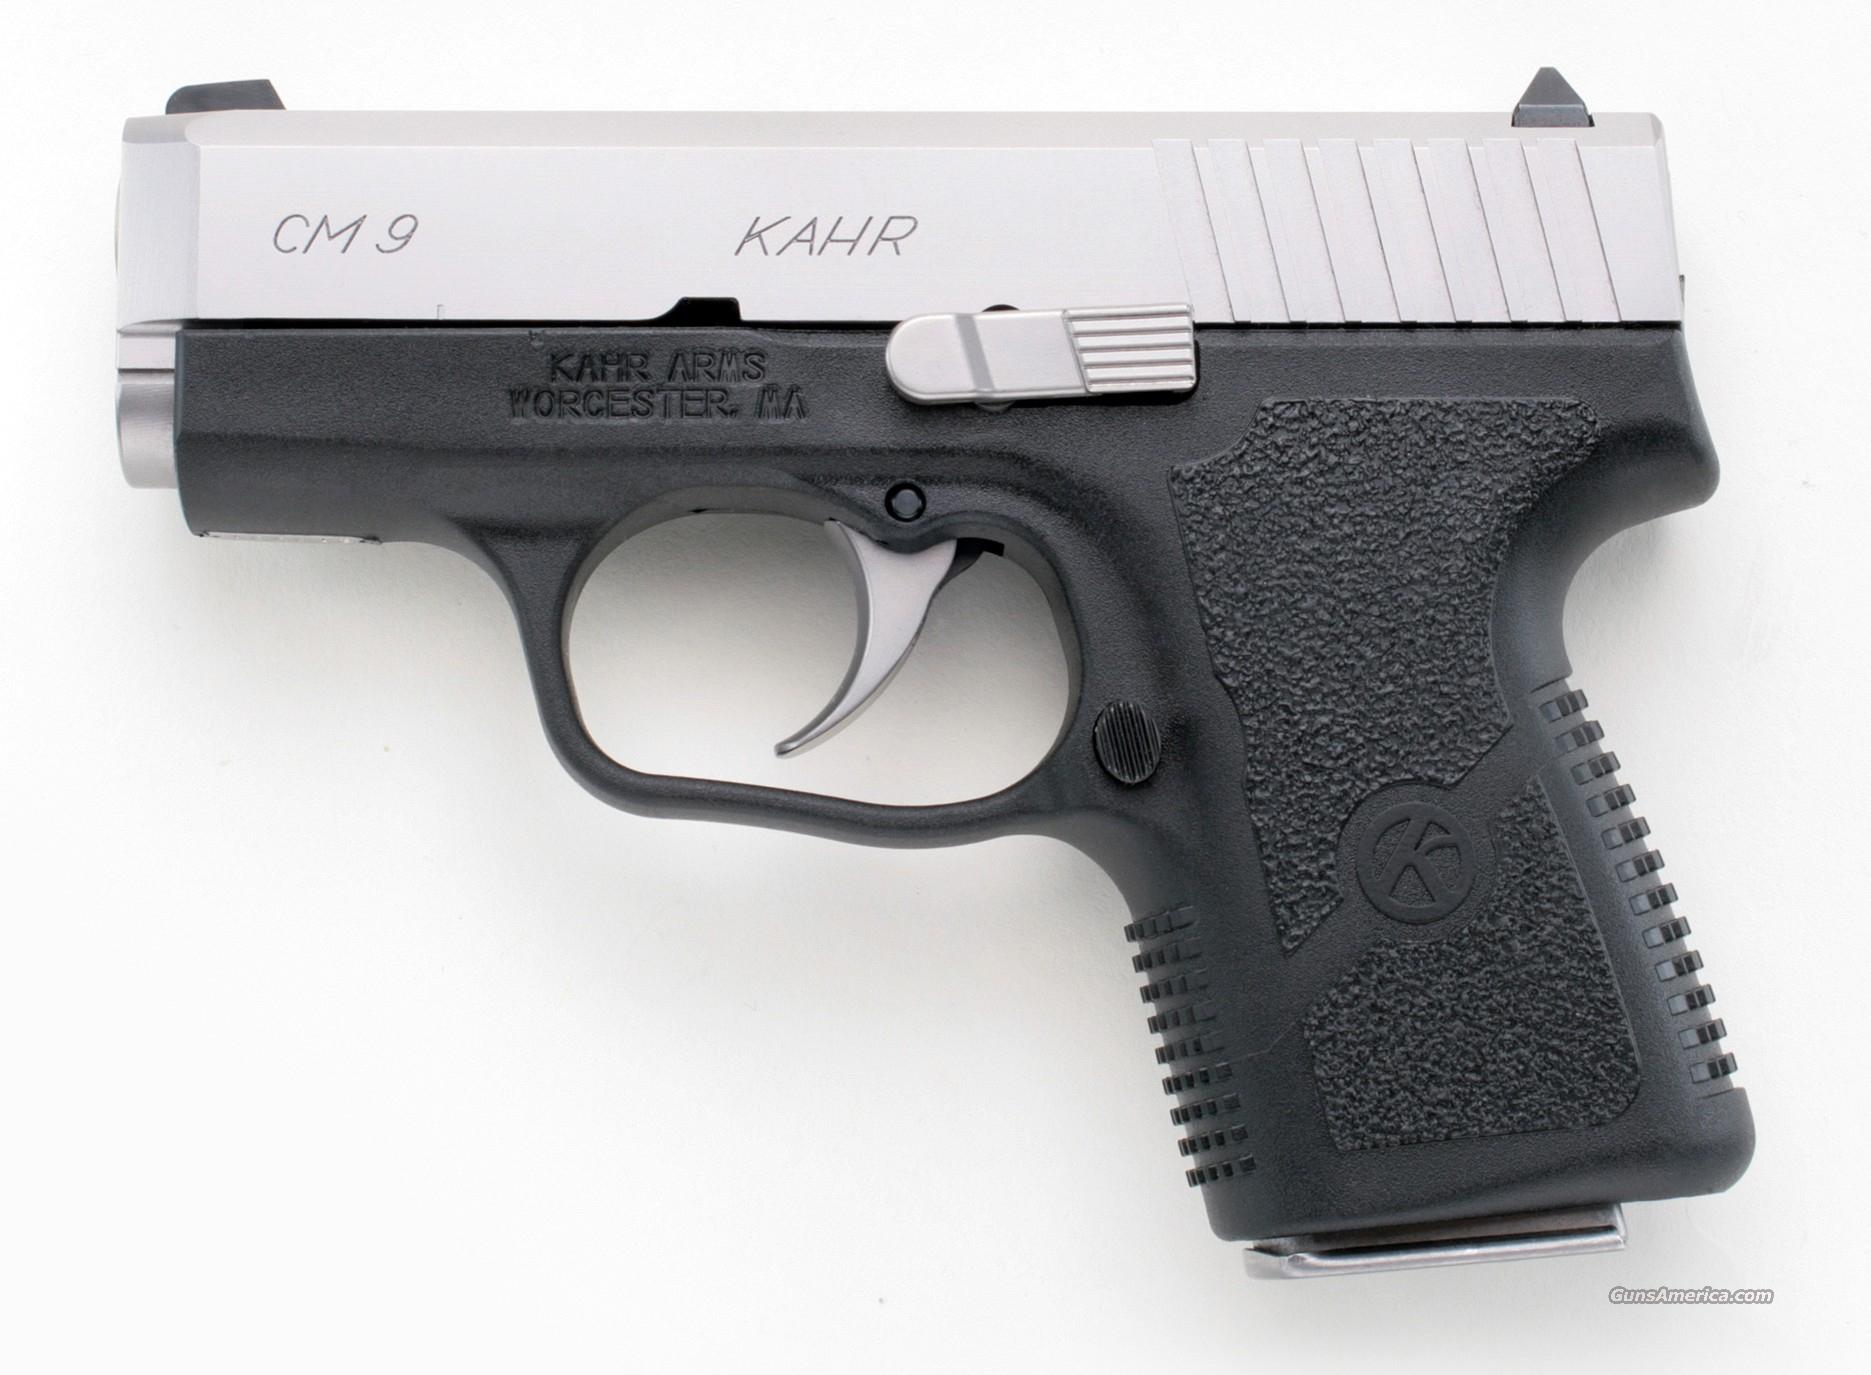 KAHR CM9 9MM COMPACT STAINLESS - NEW  Guns > Pistols > Kahr Pistols